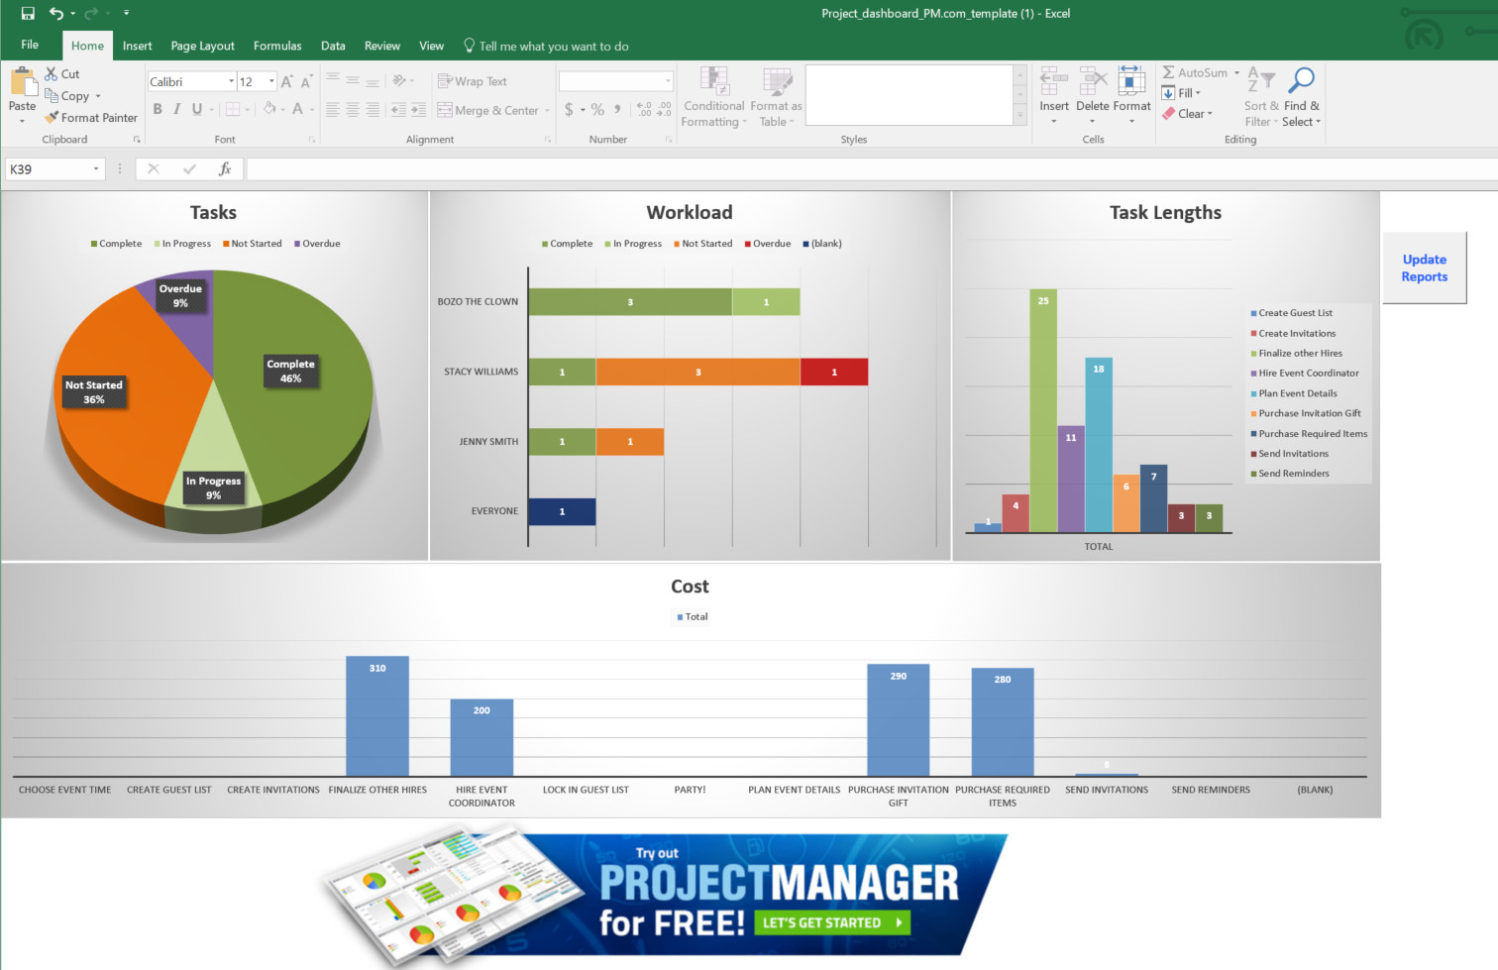 Job Tracking Spreadsheet Template With Guide To Excel Project Management  Projectmanager